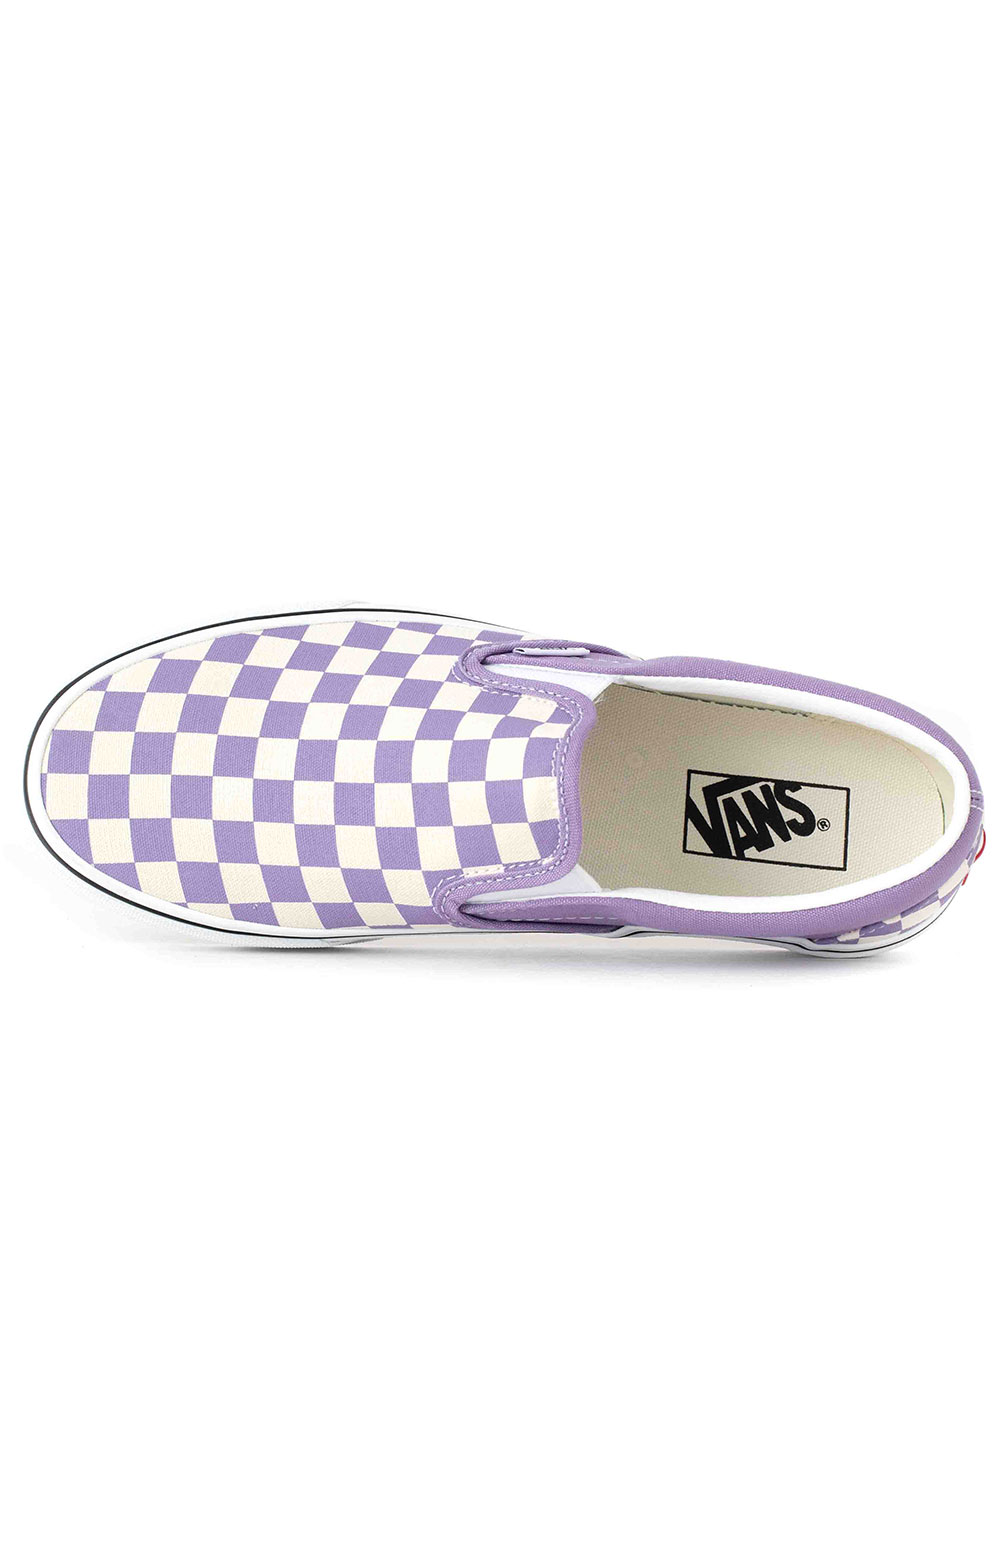 Checkerboard Classic Slip-On Shoes - Chalk Violet  2